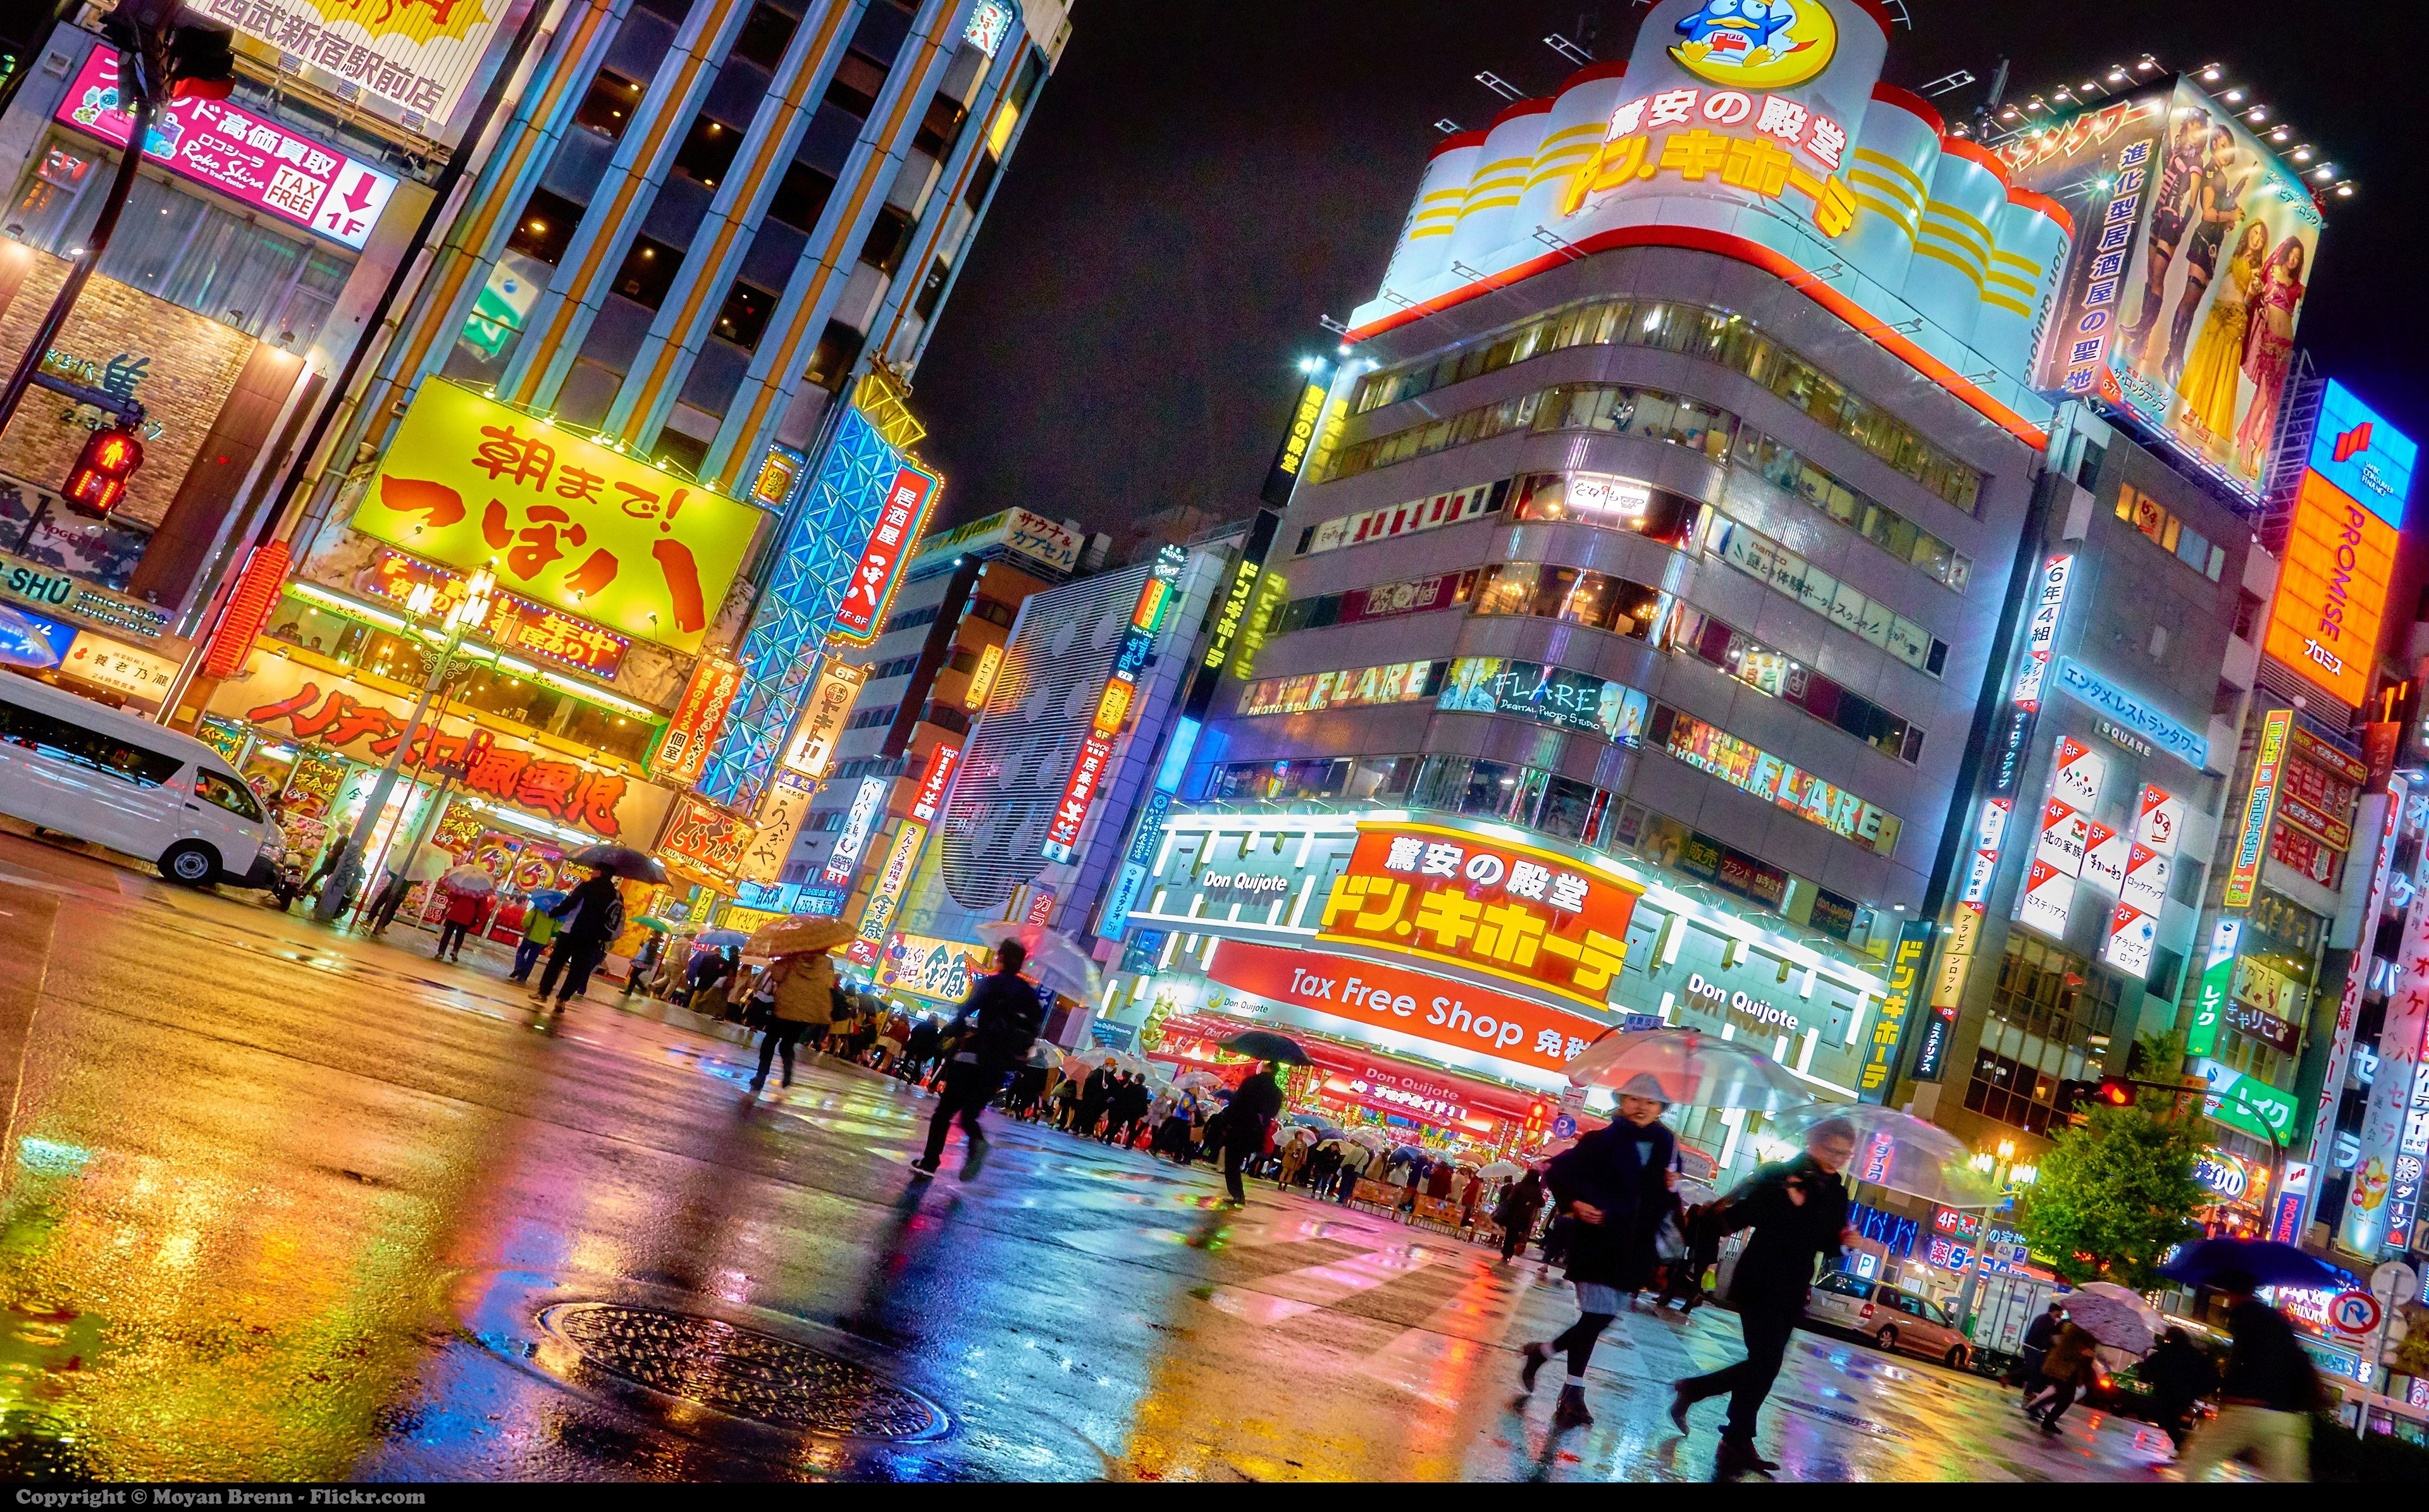 cultural tips for japan, cultural differences, japan culture tips